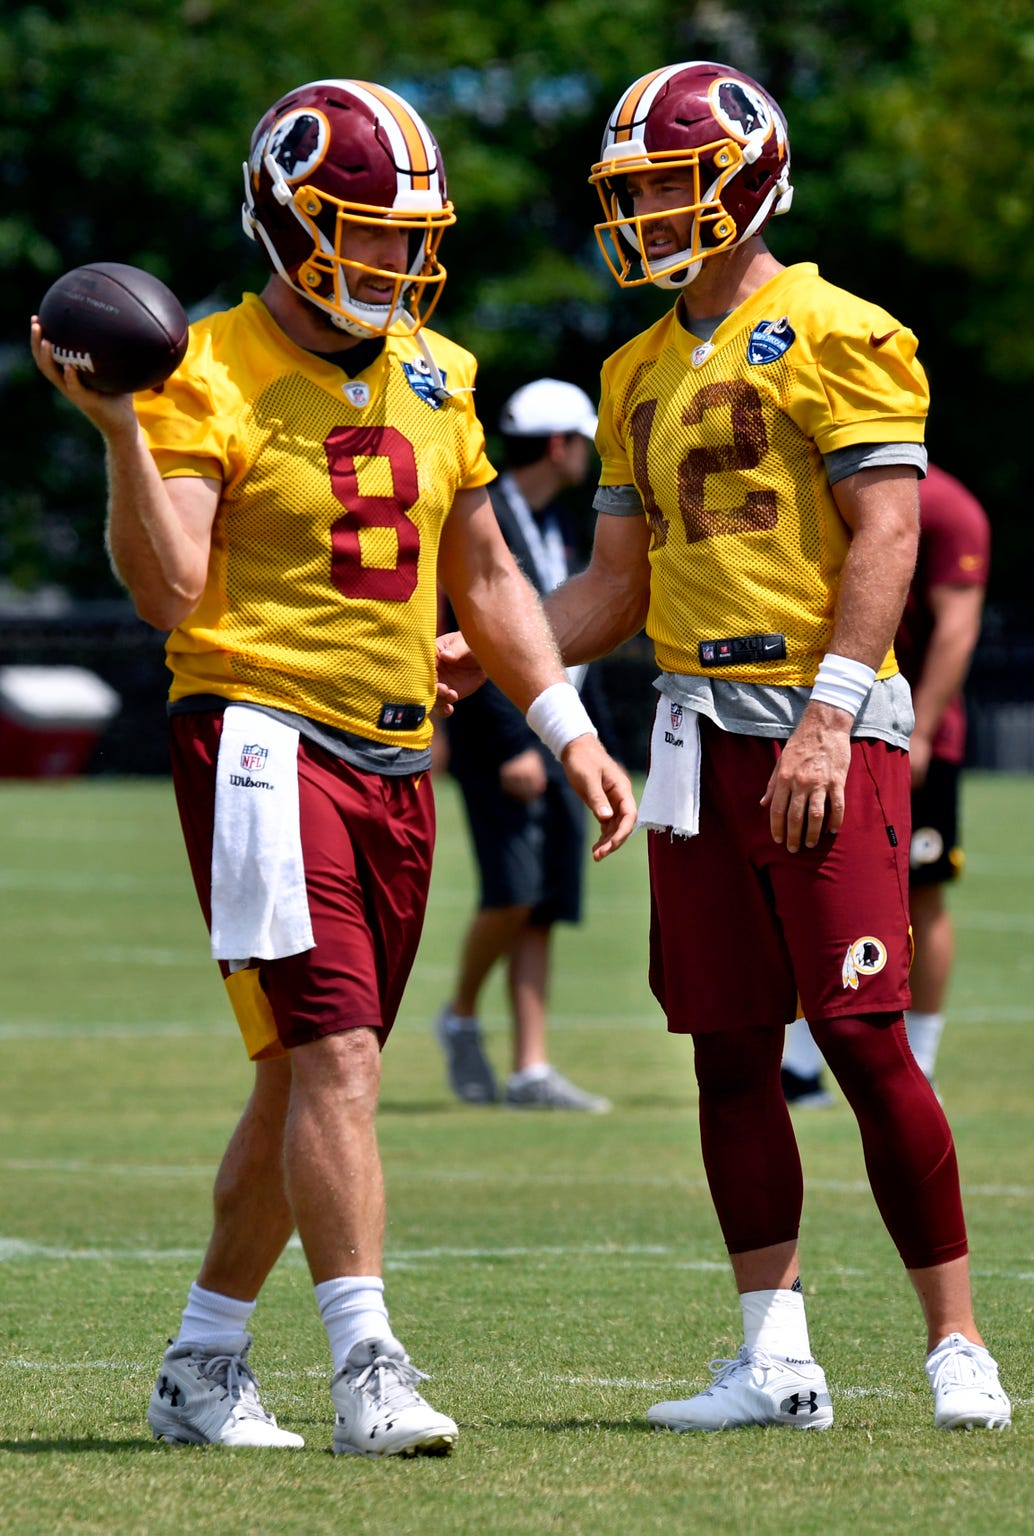 Washington Redskins quarterbacks Case Keenum (left) and Colt McCoy pass each other during training camp in Richmond, Va. Tuesday August 6, 2019.